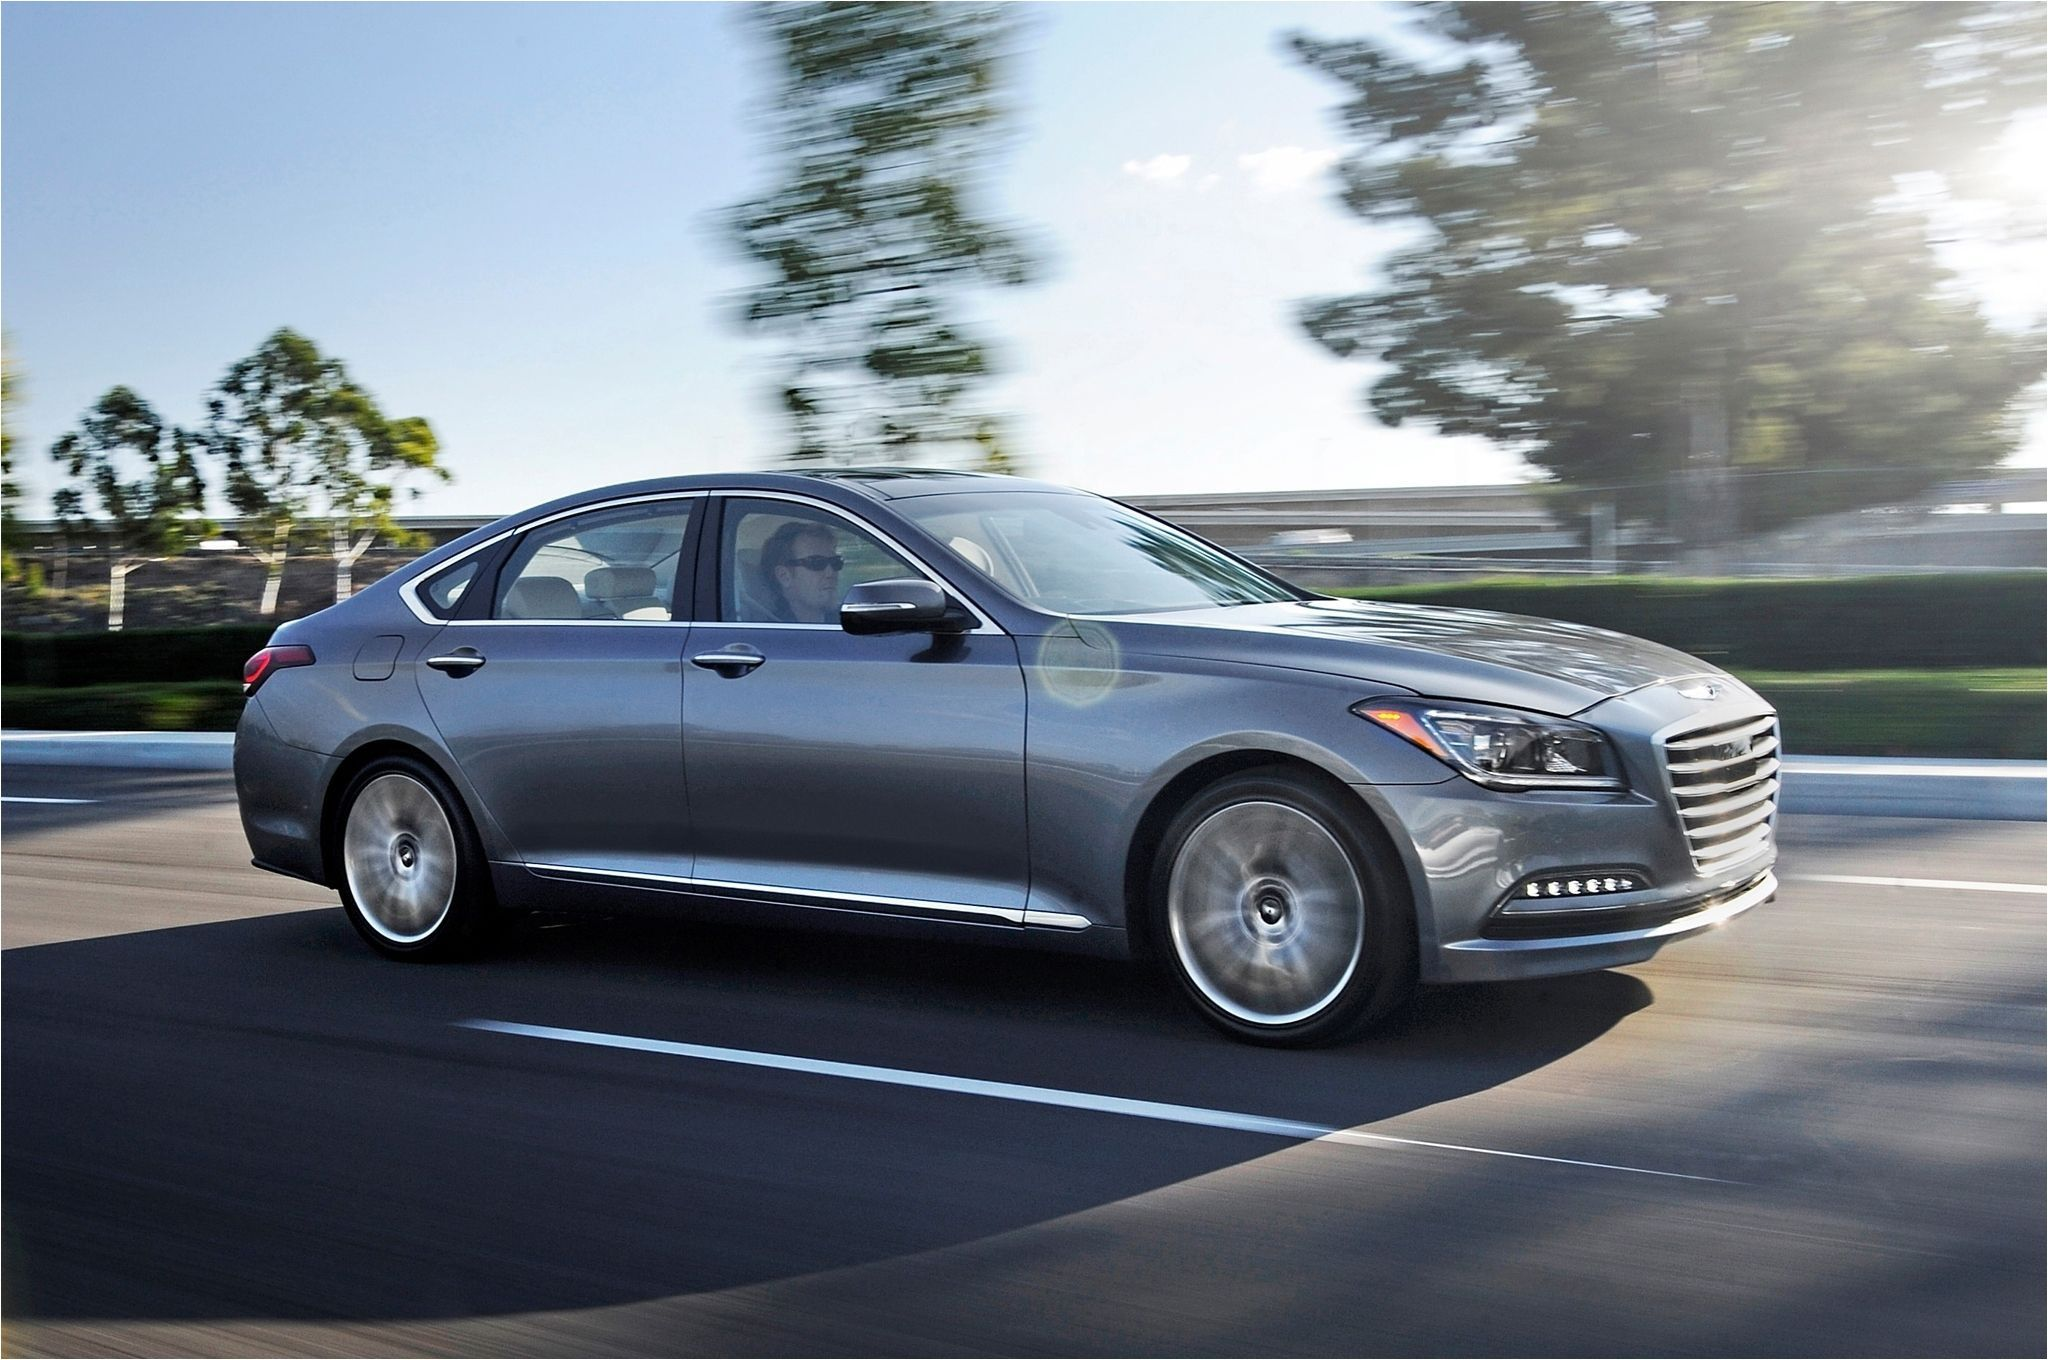 2019 Hyundai Equus Ultimate Picture, Release date, and Review